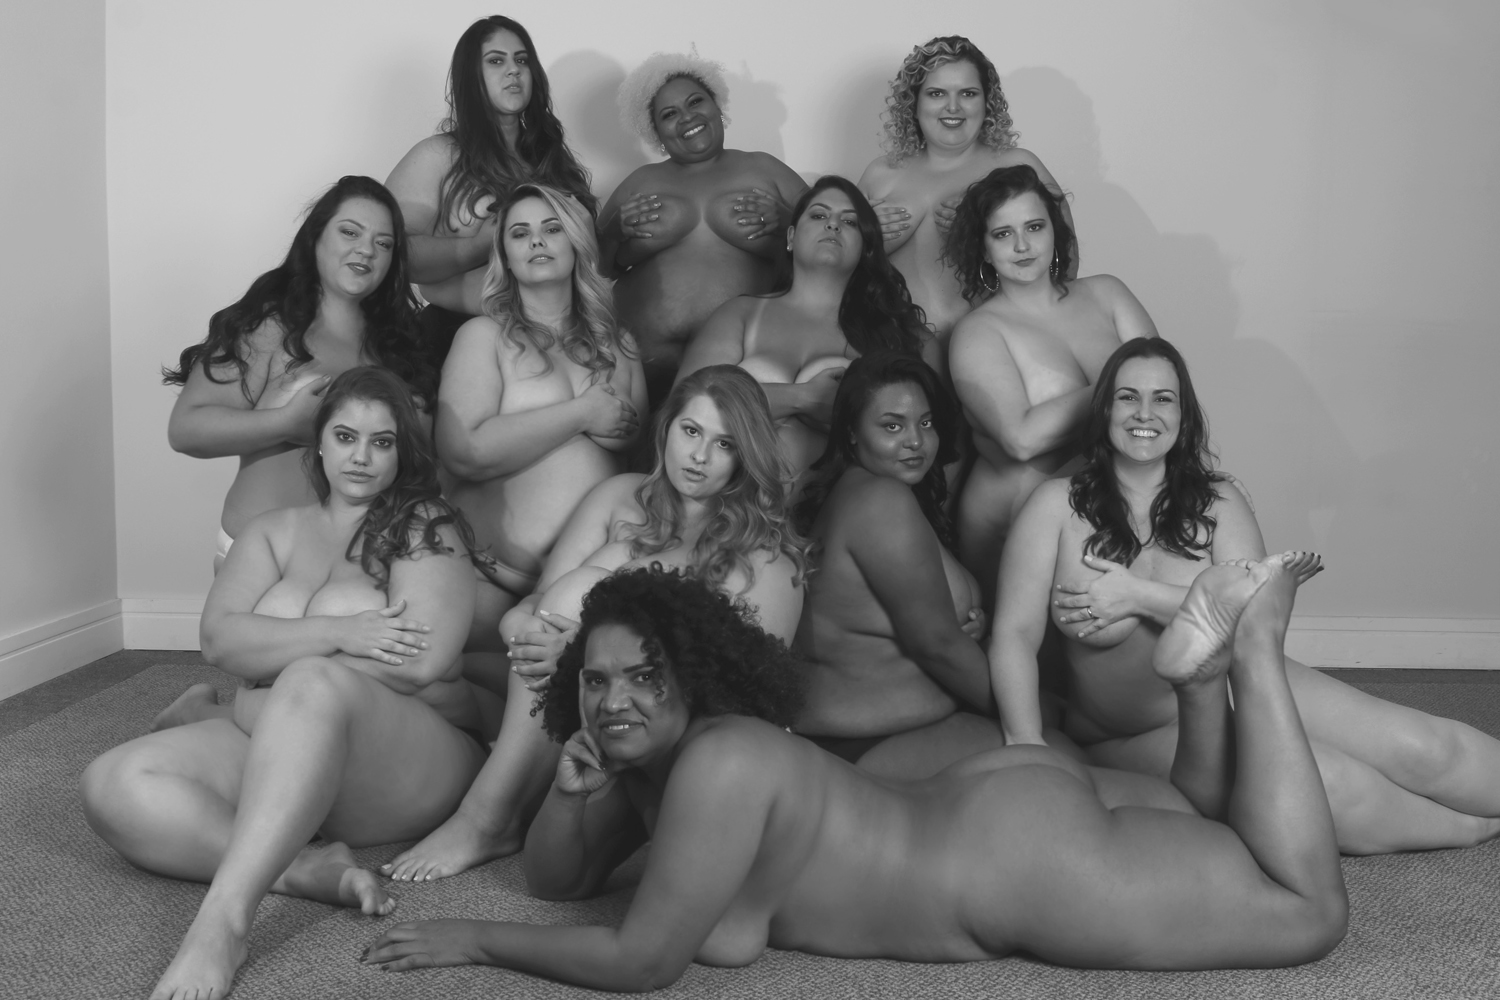 Formandas do Workshop para Modelos Plus size da Renata Poskus em abril de 2018.